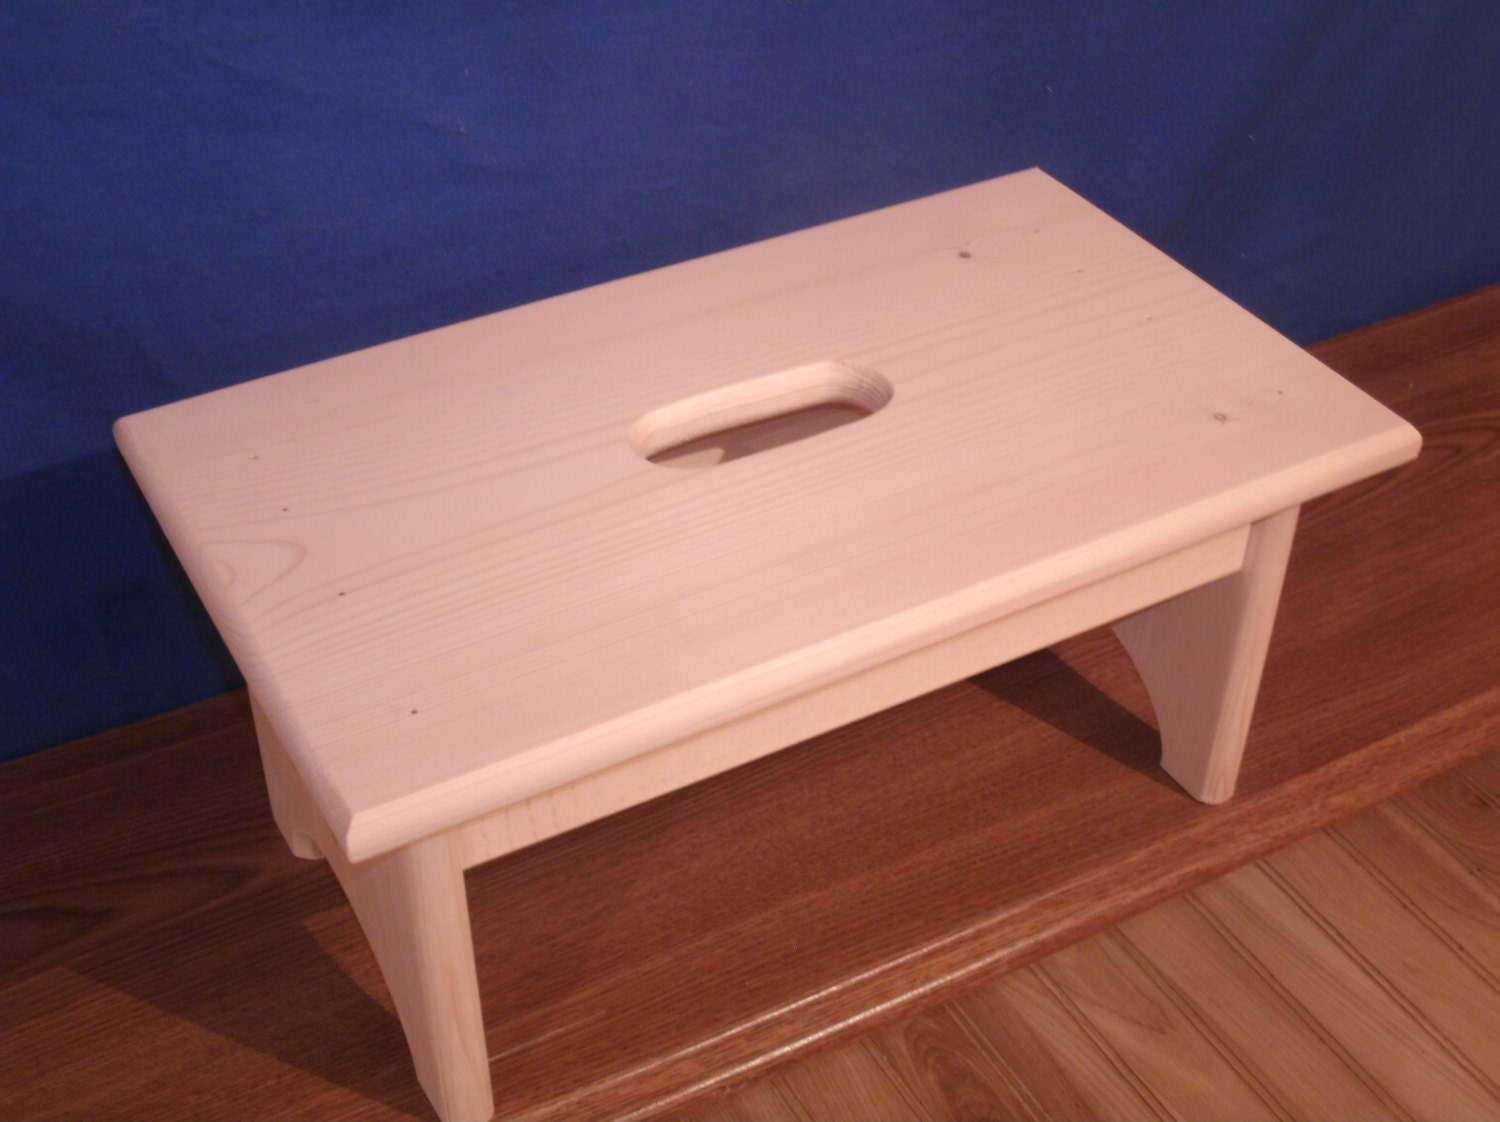 Rustic Wooden Step Stool Wood Step Stool 7 1 2 Tall